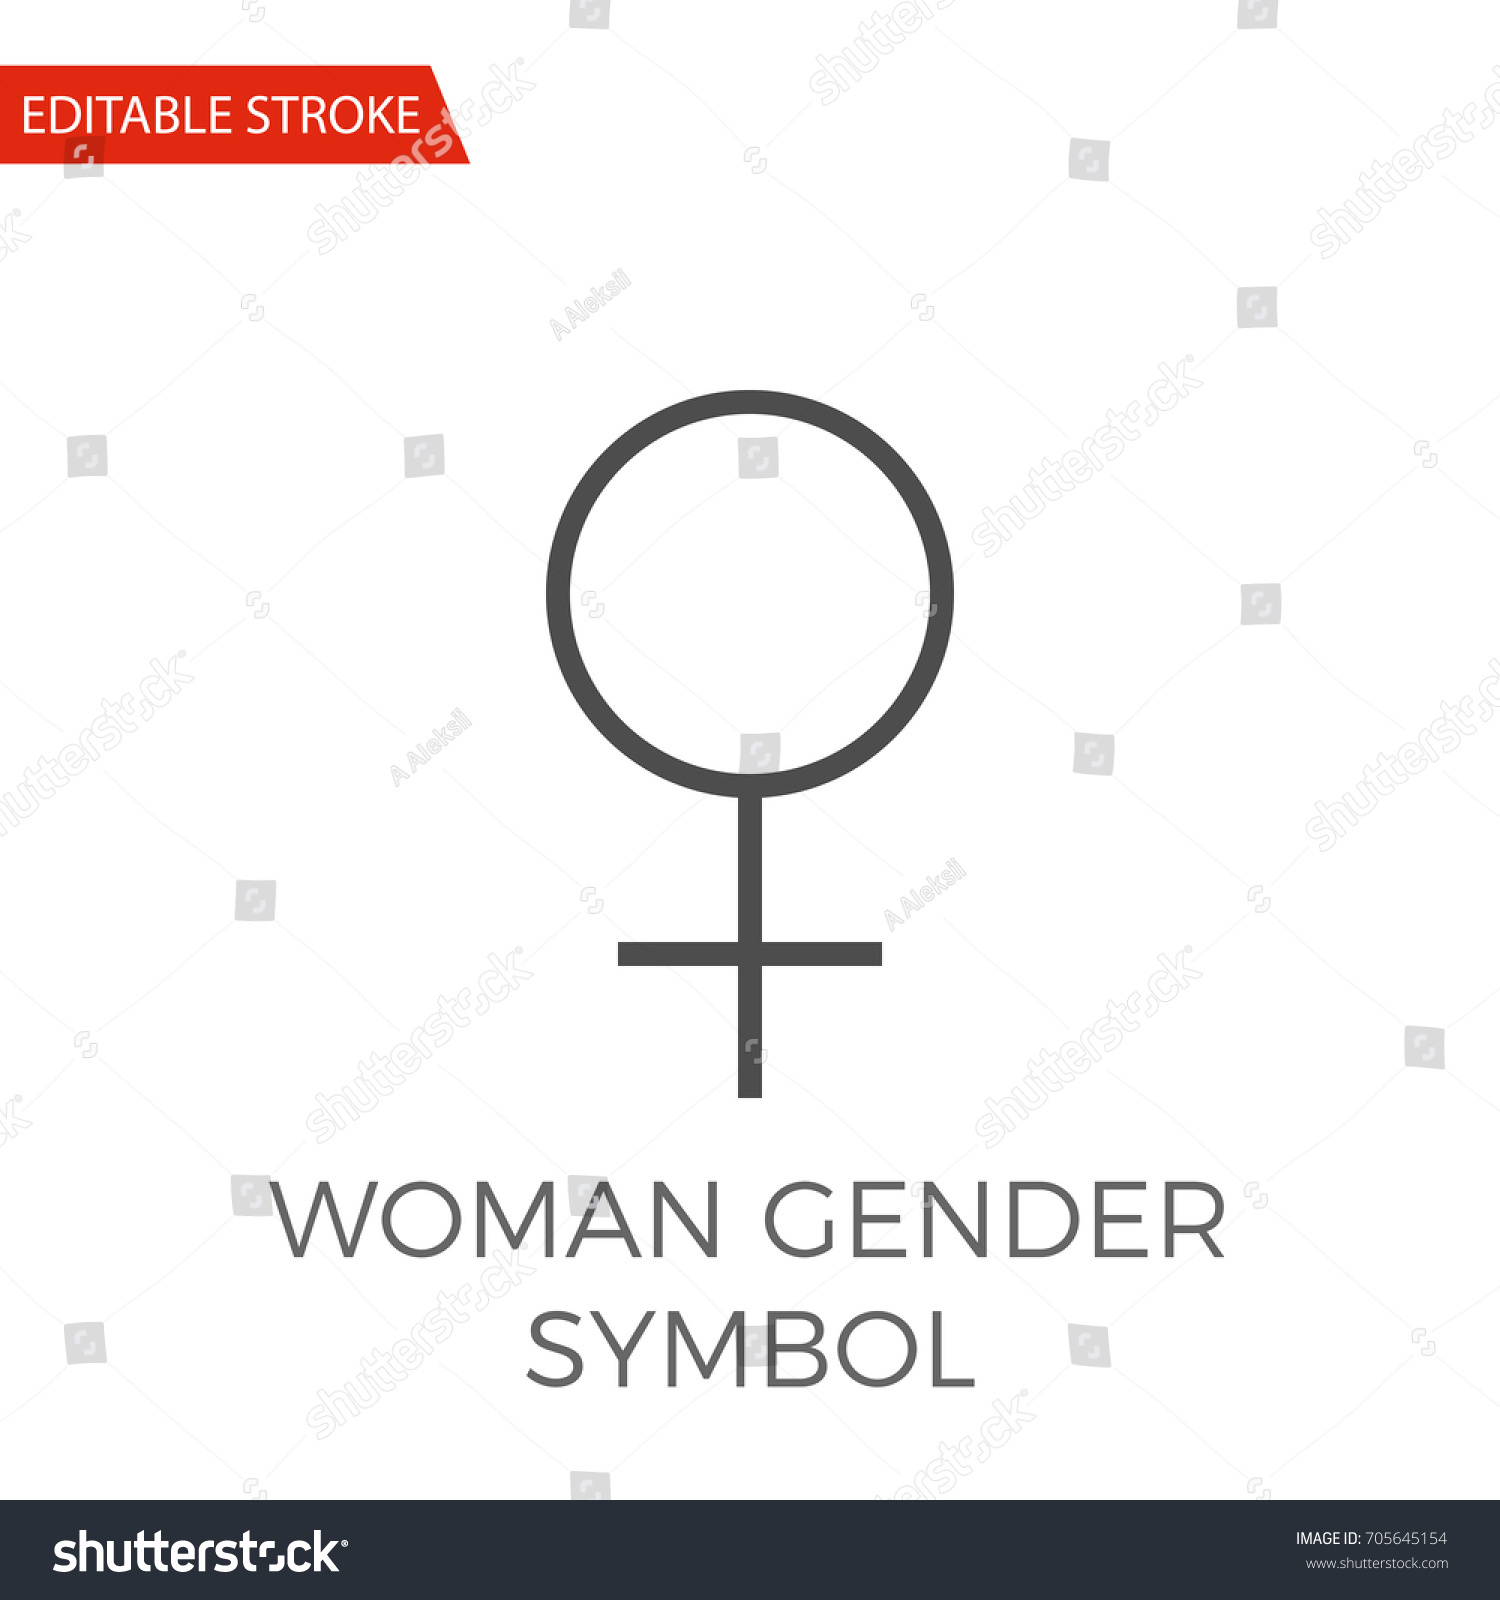 Woman gender symbol thin line vector stock vector 705645154 woman gender symbol thin line vector icon flat icon isolated on the white background buycottarizona Choice Image